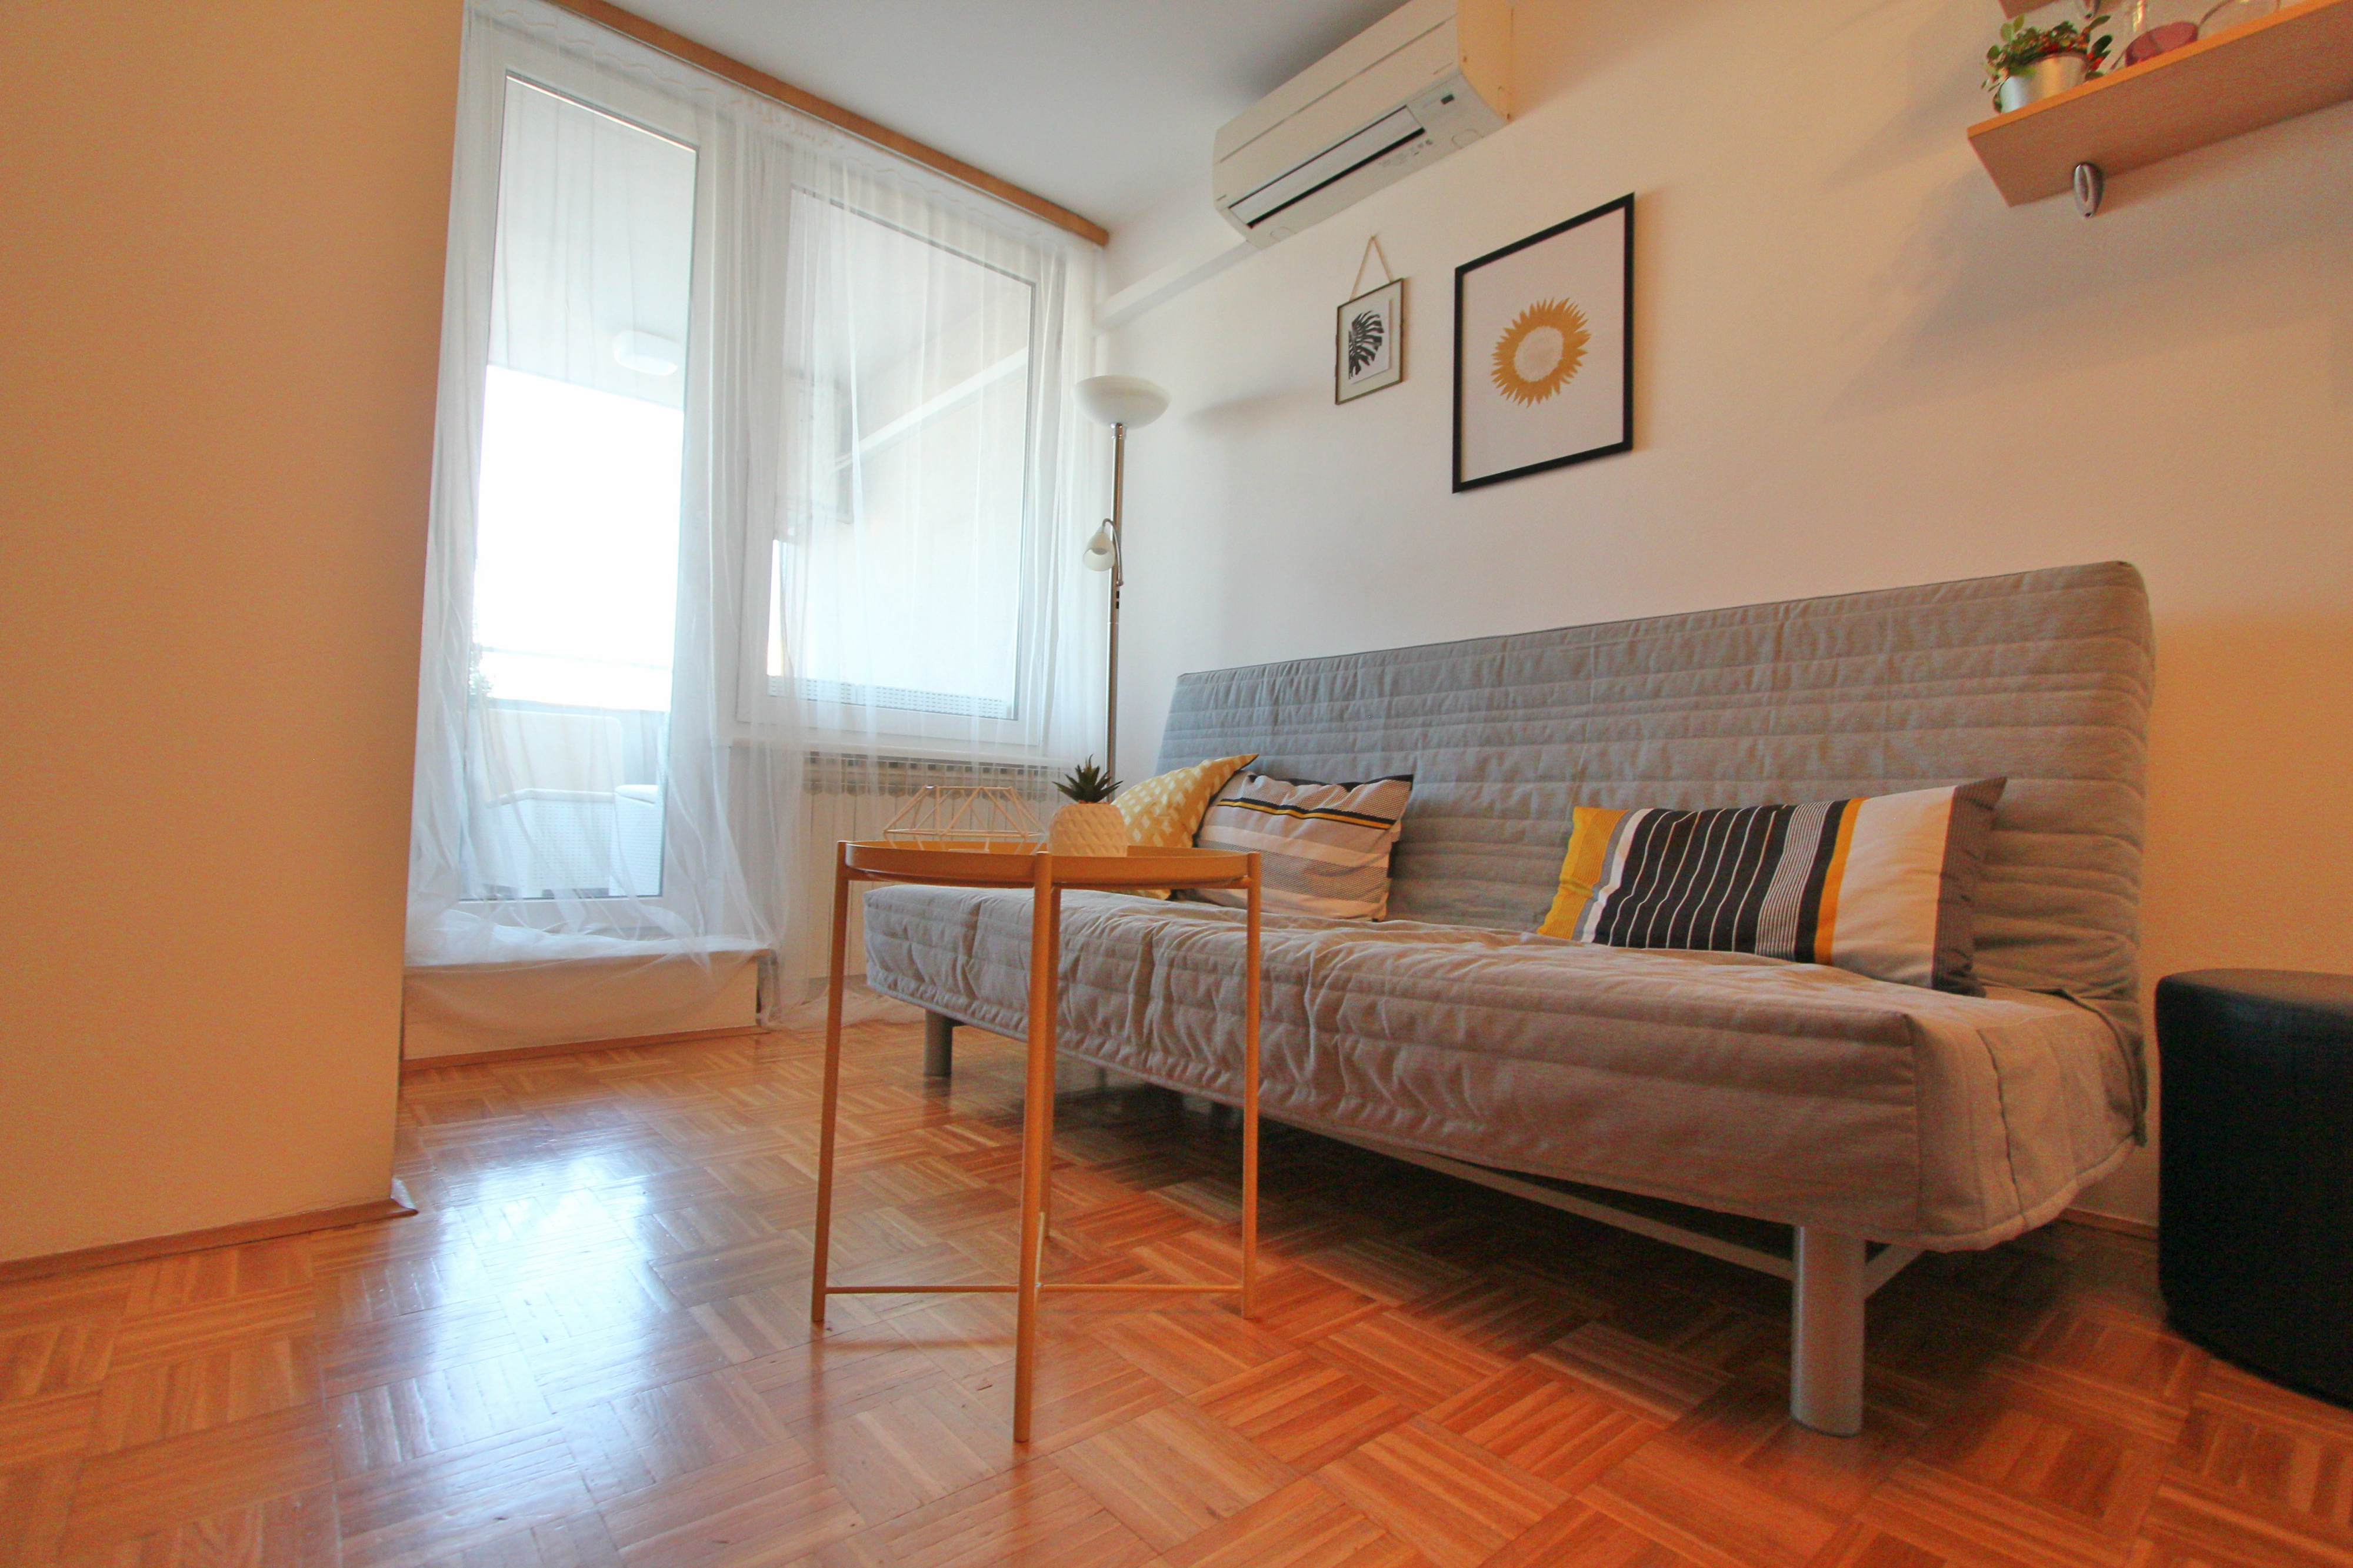 Penthouse in center of zagreb with private garage bik travel